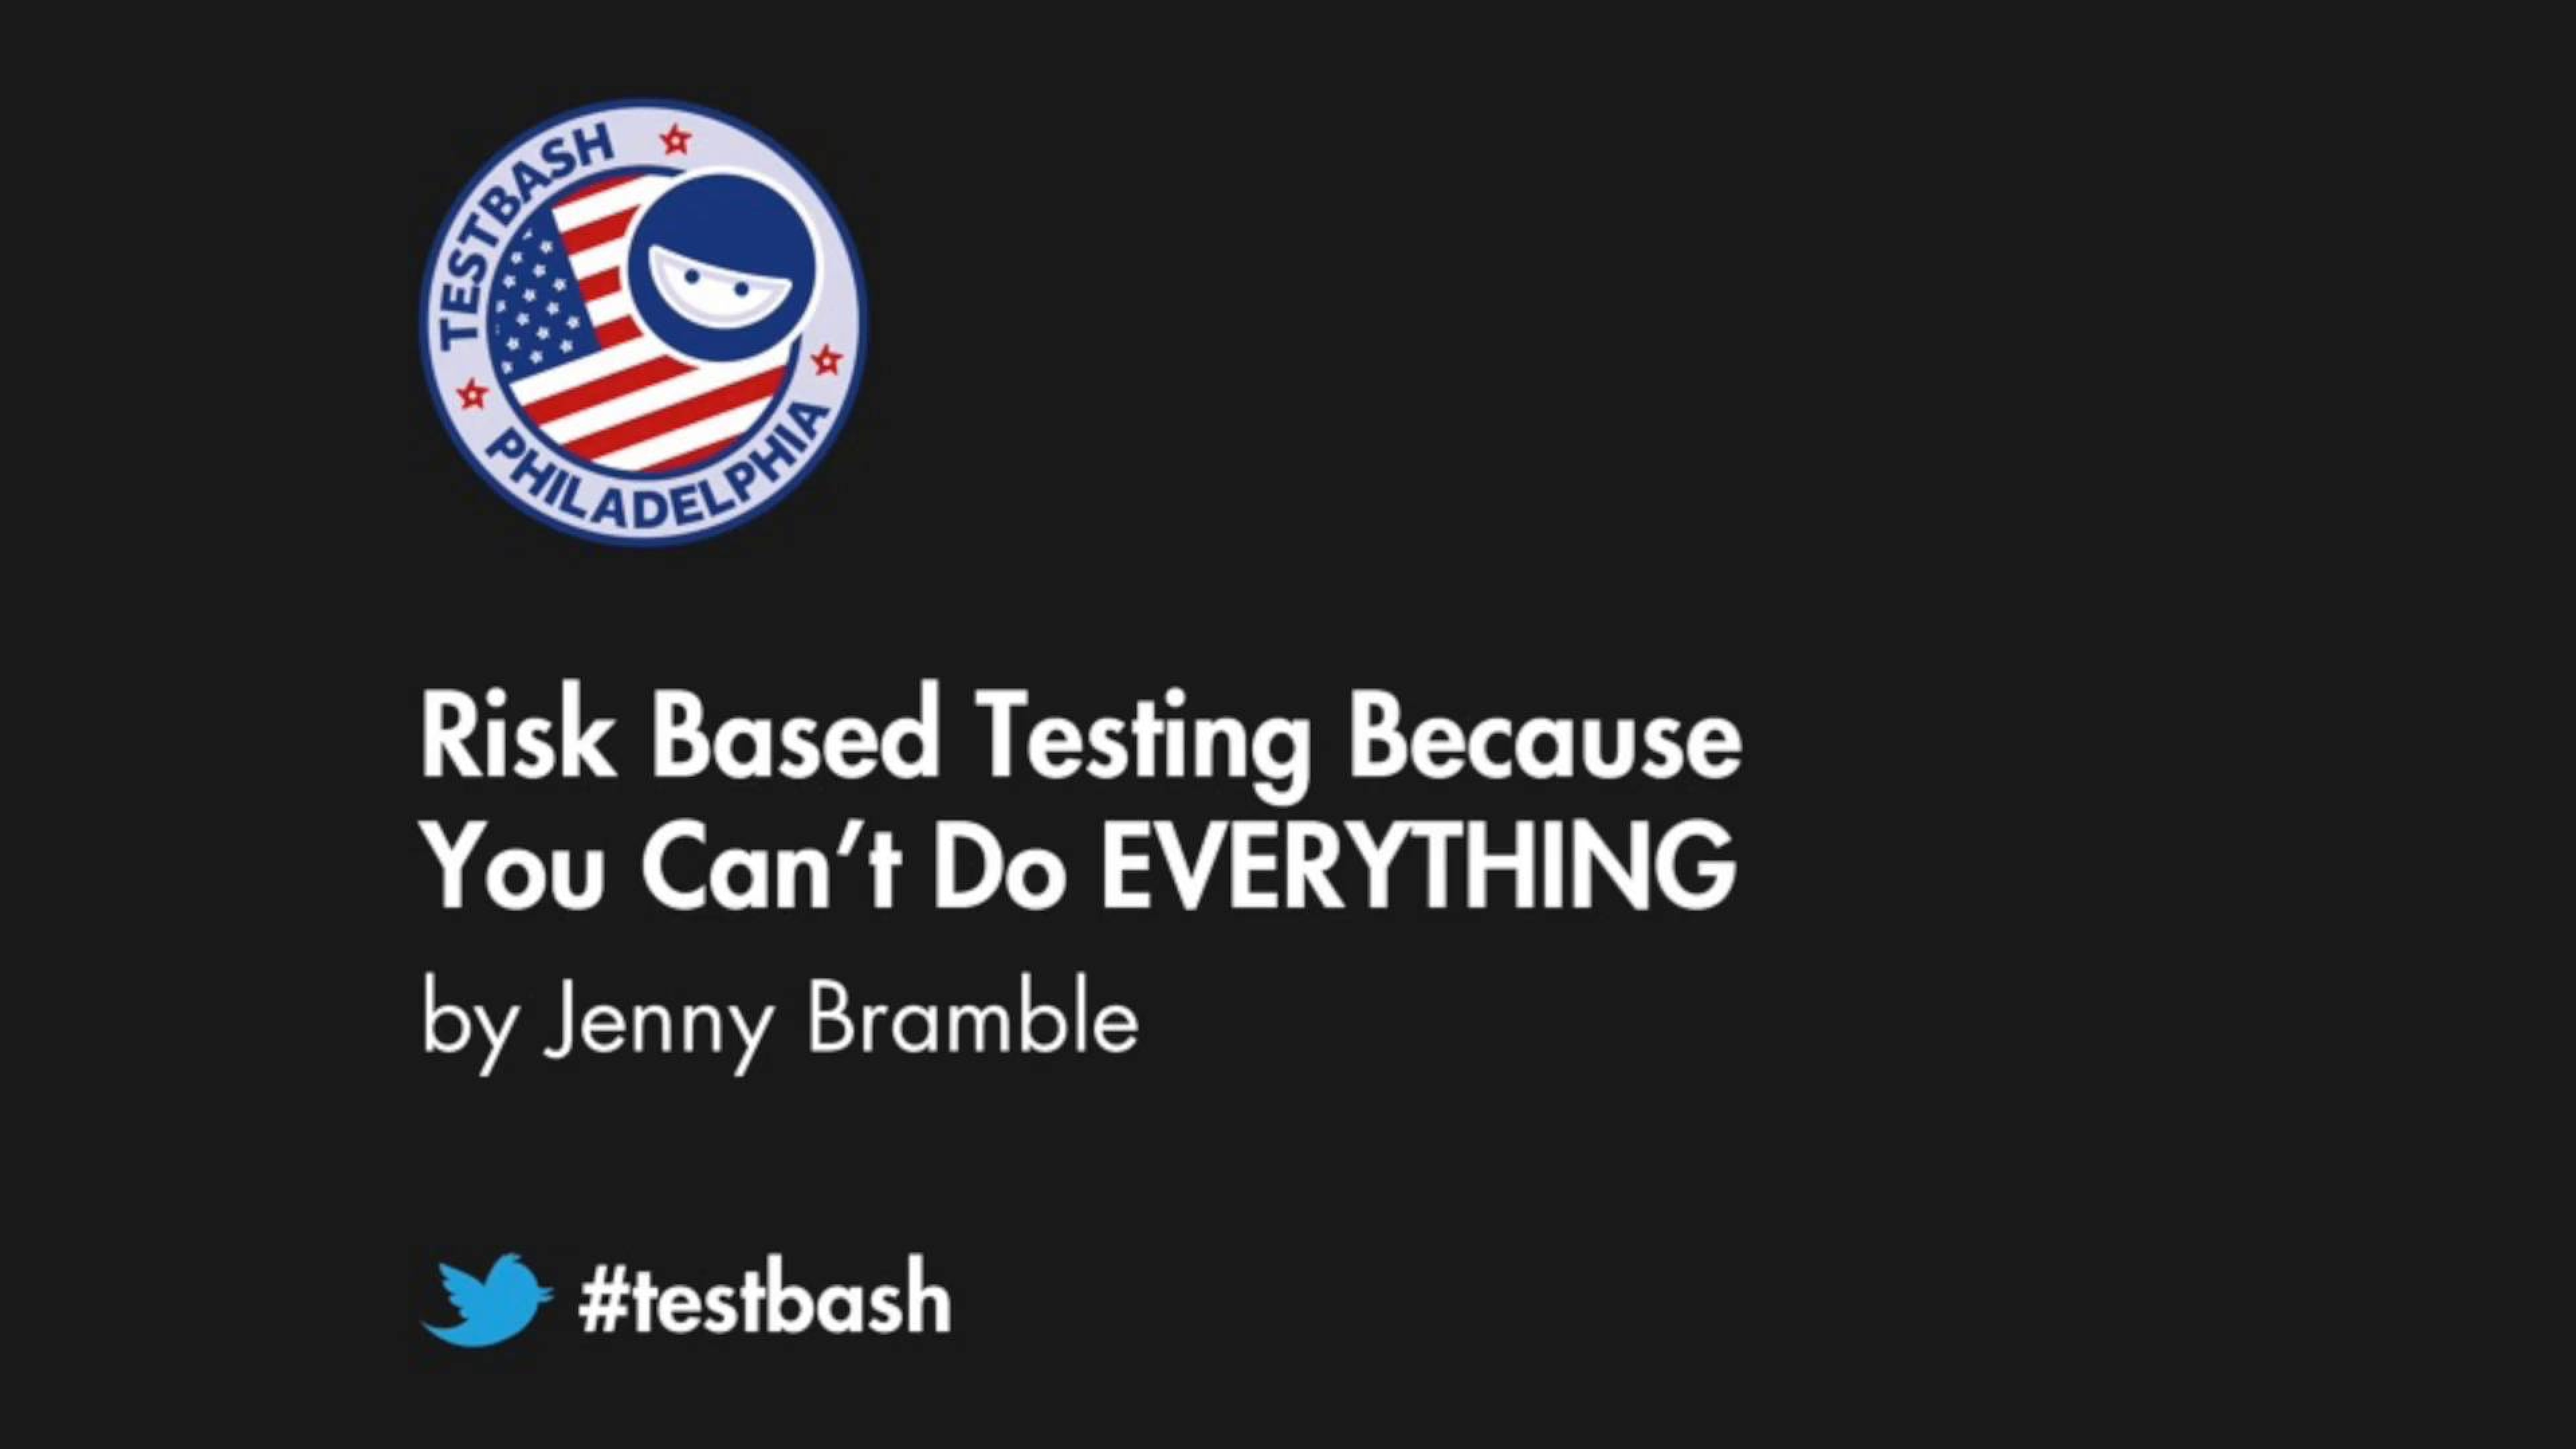 Risk Based Testing Because You Can't Do EVERYTHING - Jenny Bramble